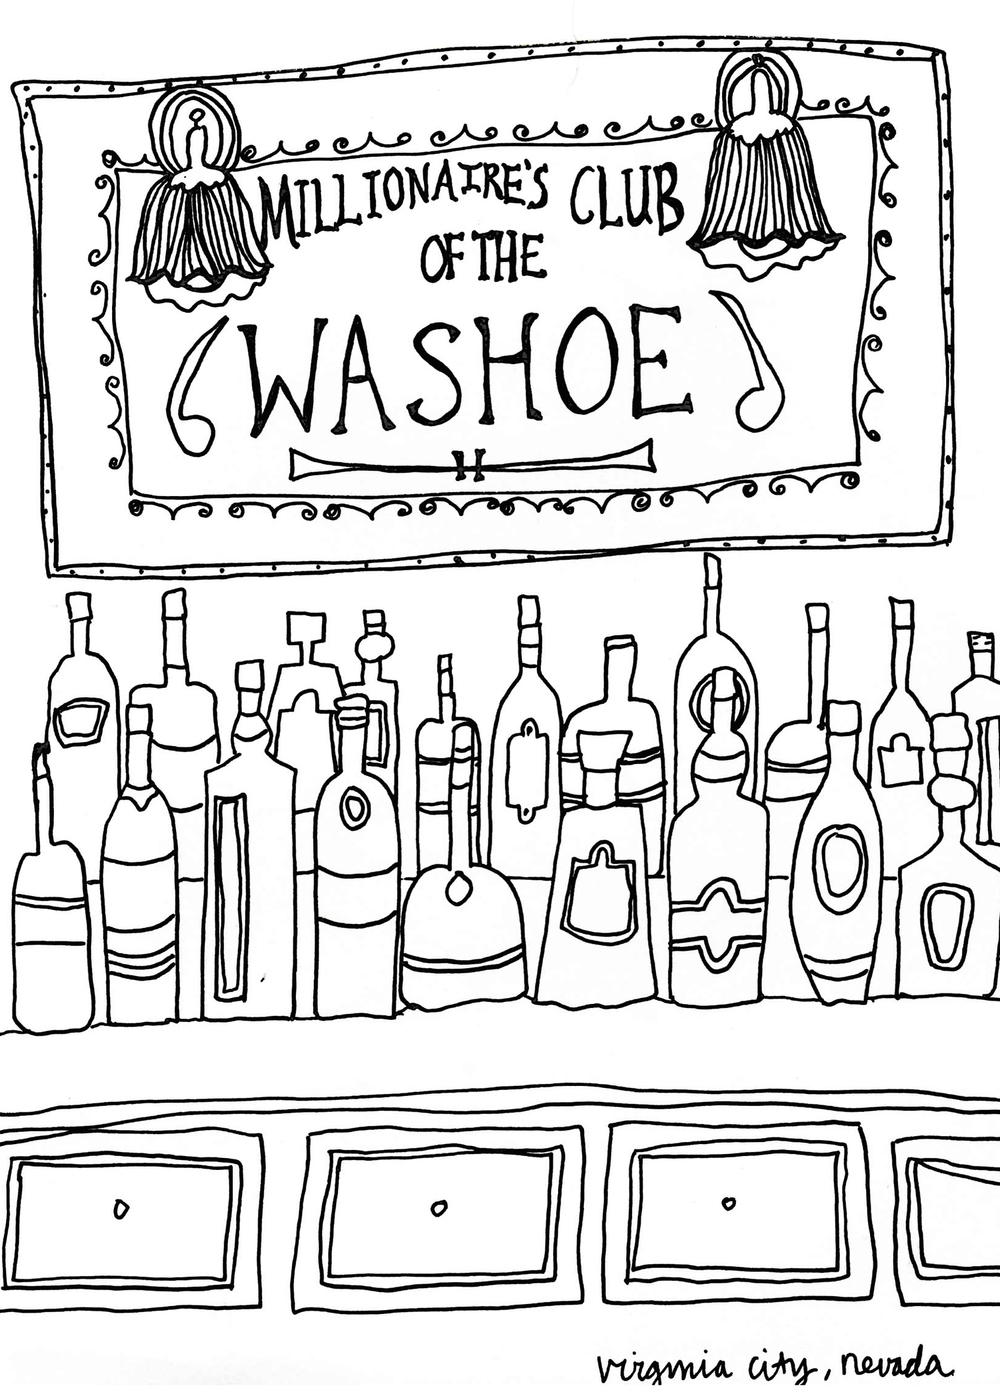 millionaires club washoe virginia city nevada drawing illustration nicole stevenson studio design drawing.jpg